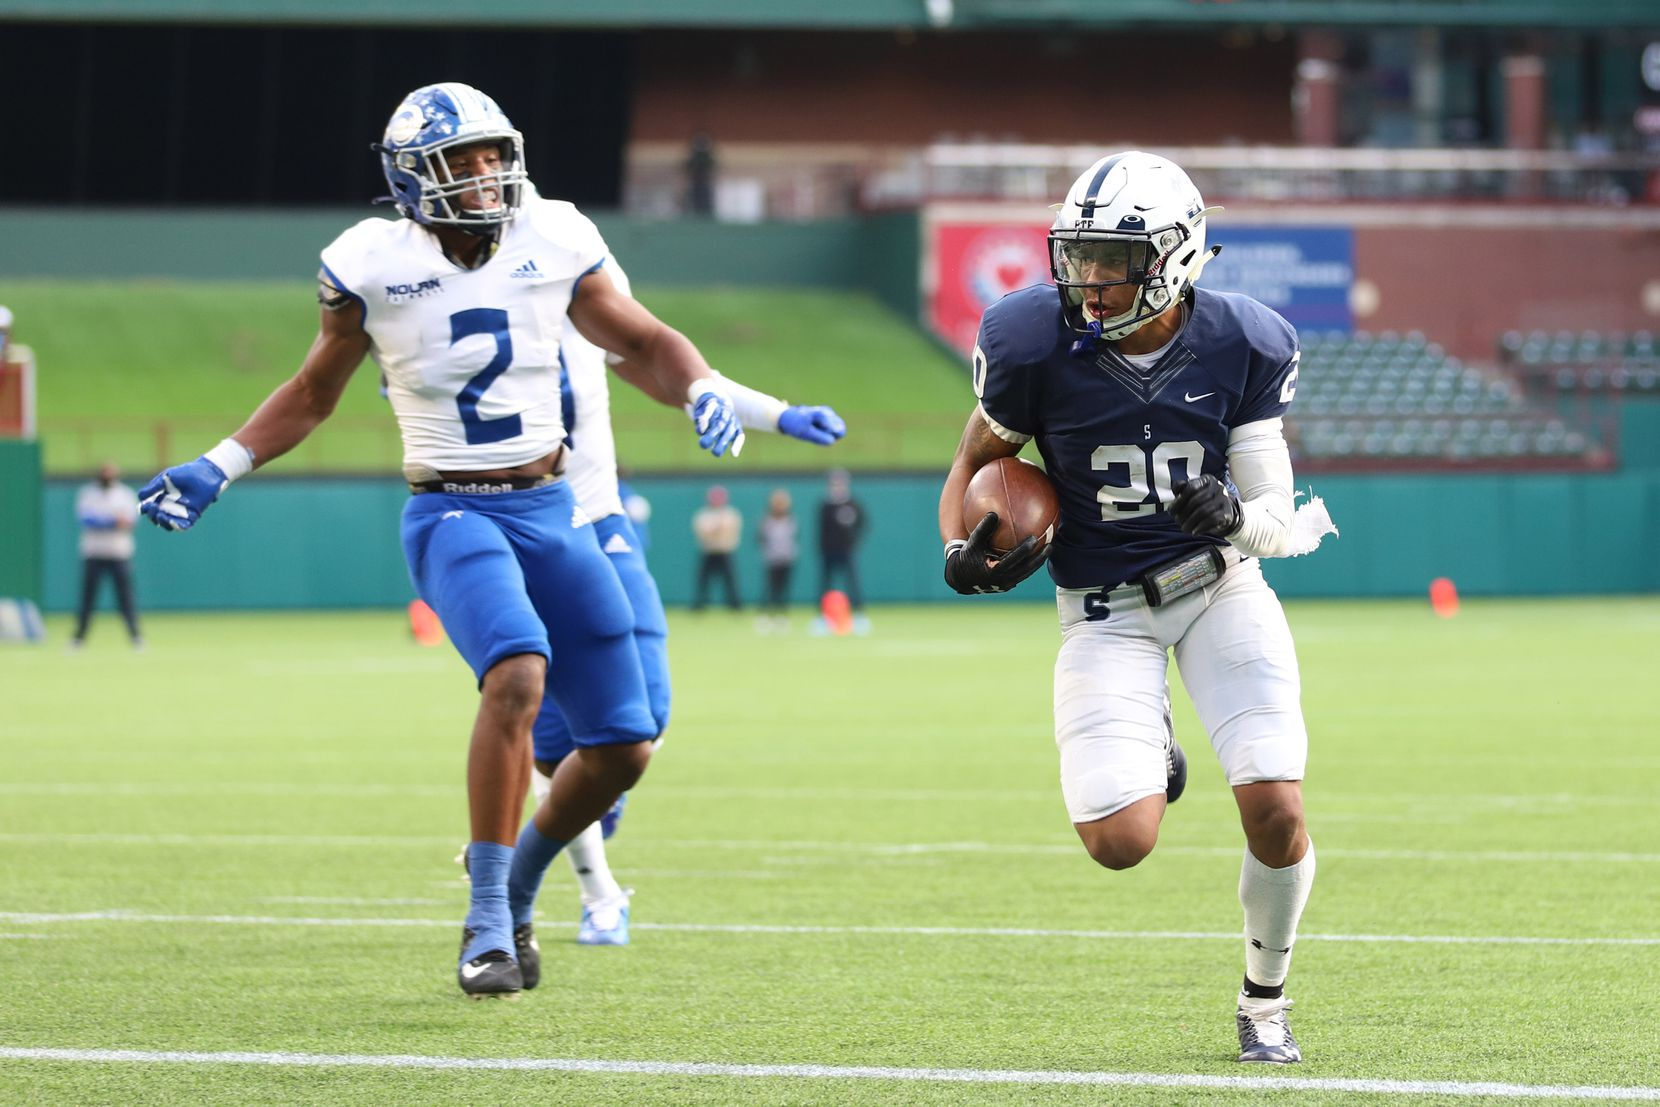 Fort Worth All Saints running back Nichlas Cole (20) runs for a touchdown against Fort Worth Nolan outside linebacker Vincent Paige (2) during the first half at Globe Life Park in Arlington, Saturday, December 5, 2020. (Elias Valverde II / Special Contributor)